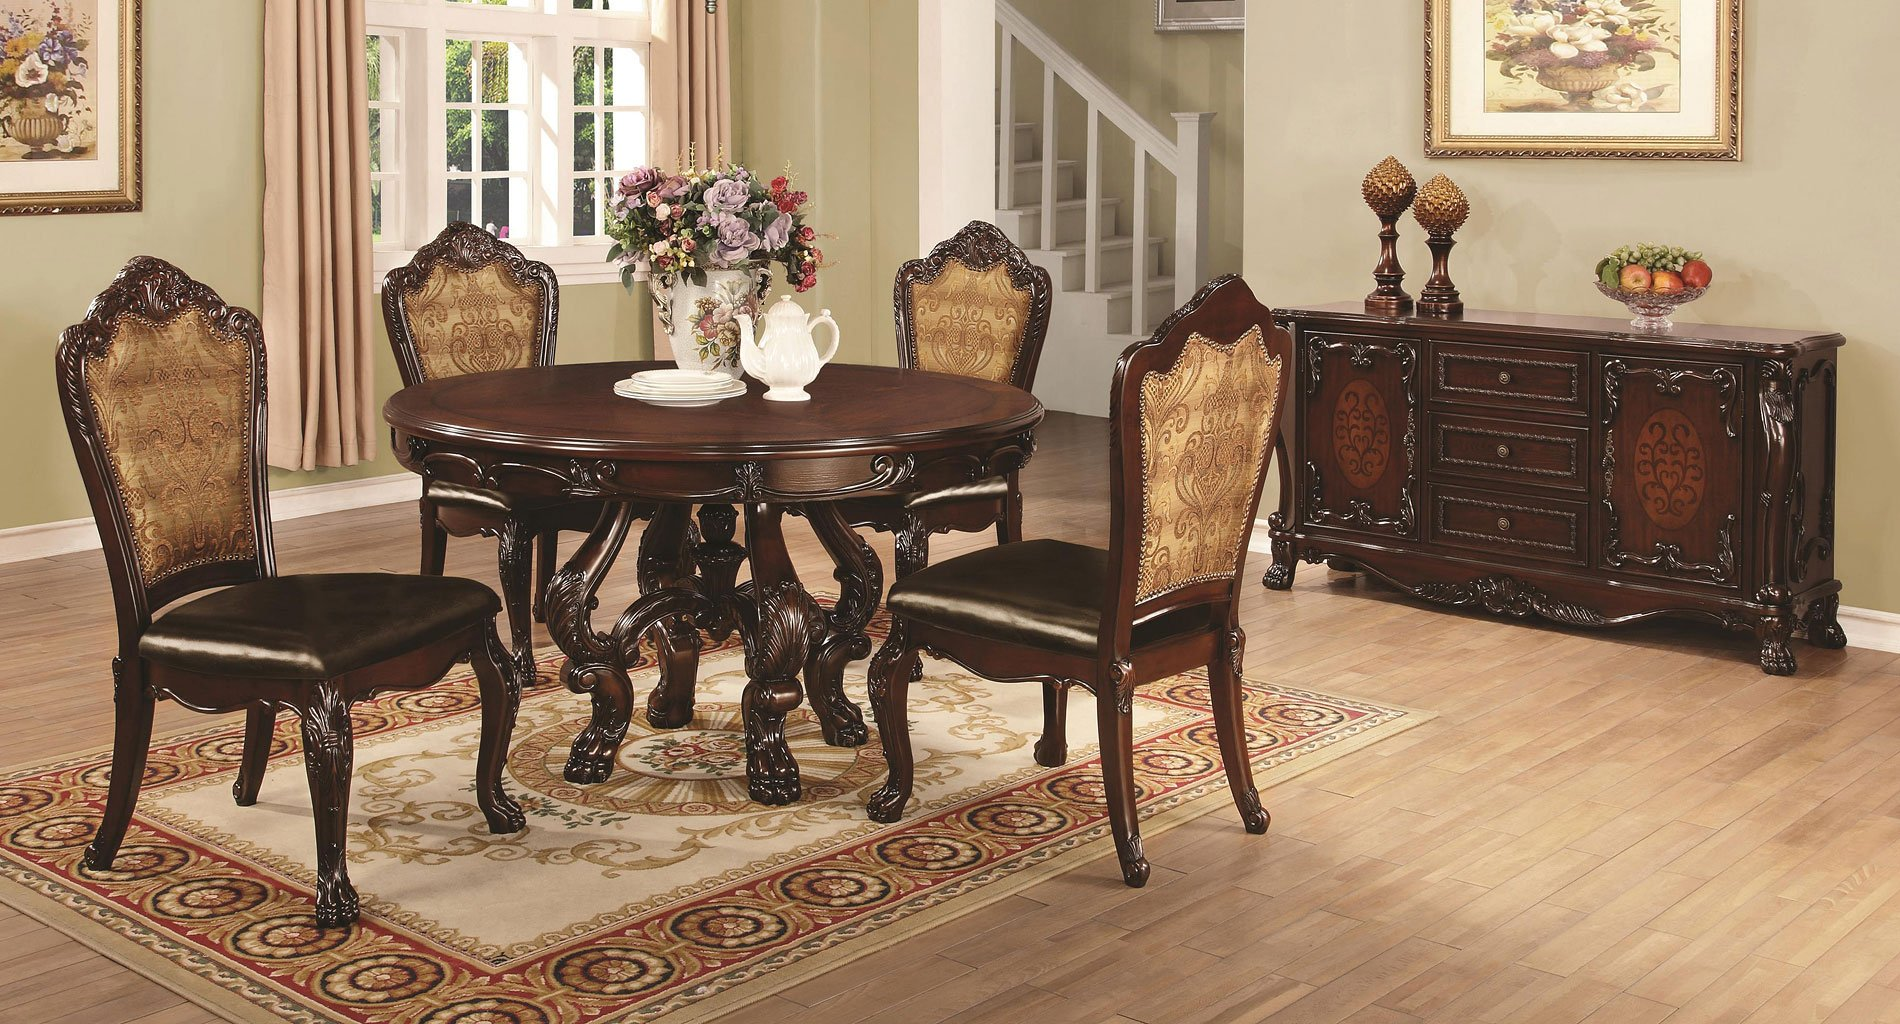 Benbrook round dining room set casual dining sets dining room and kitchen furniture dining - Casual kitchen sets ...